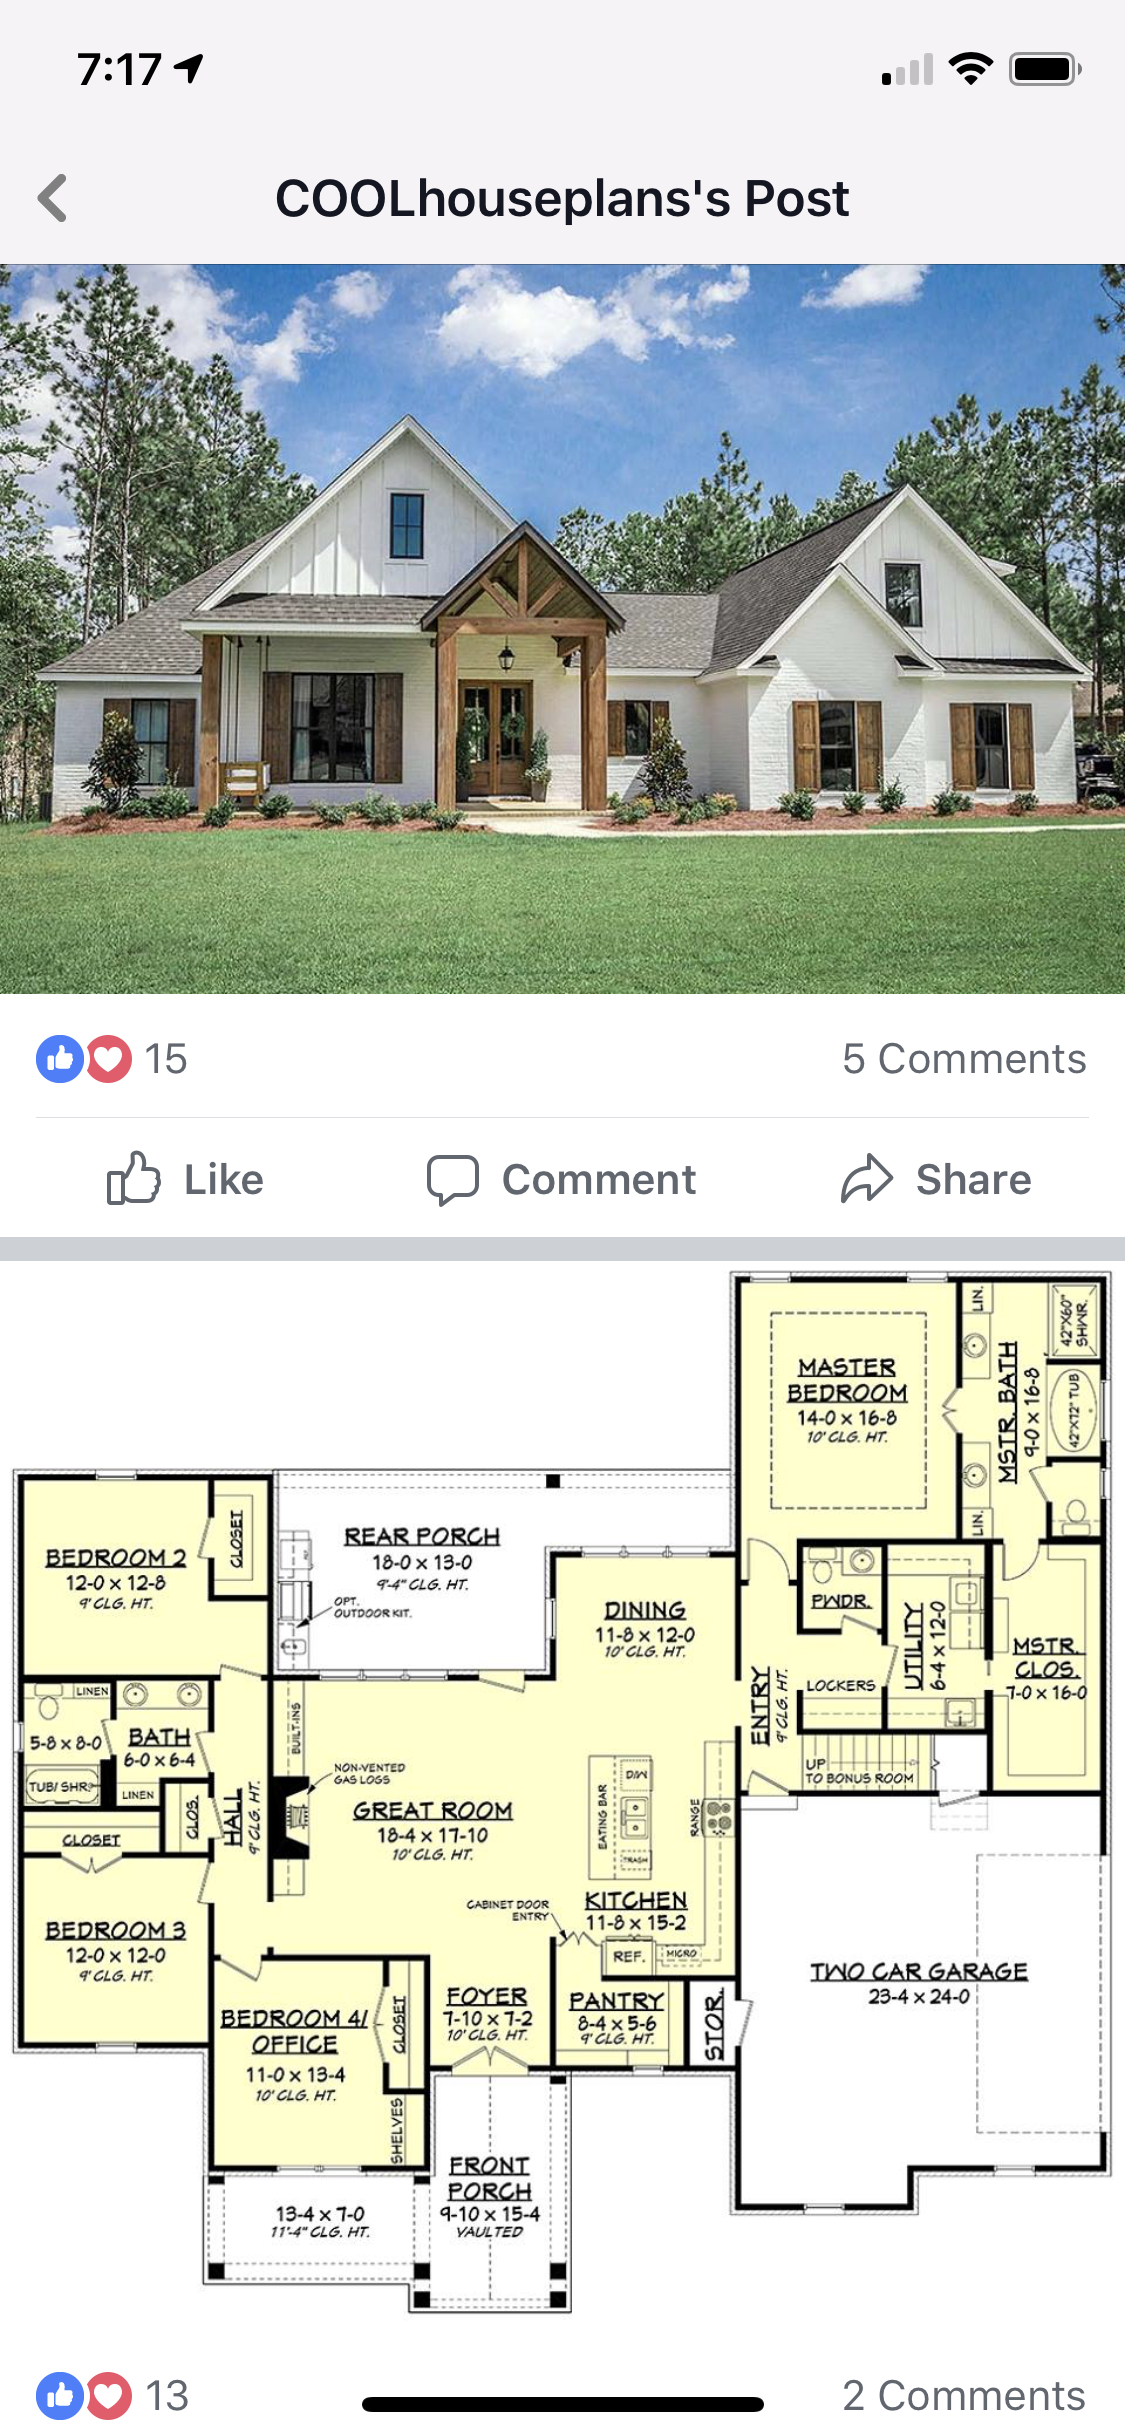 Pin By Karen Brandt On Home Sweet Home Farmhouse Floor Plans Modern Farmhouse Plans Farmhouse Plans